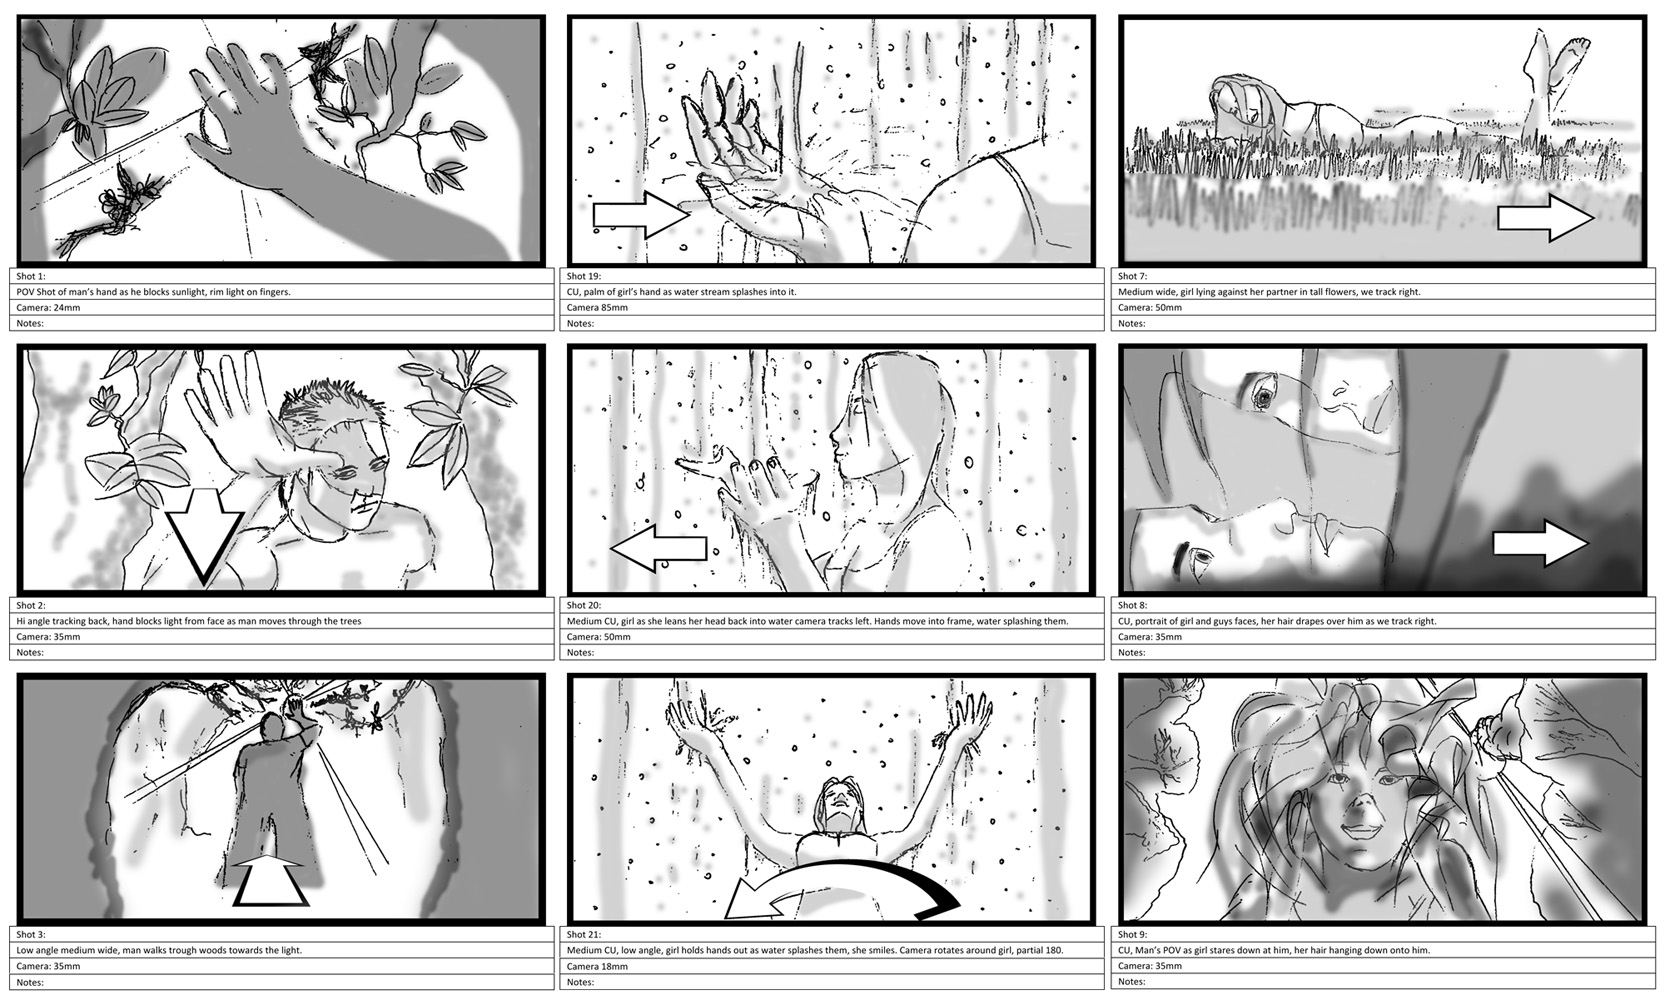 Storyboards sample illustrated by David Ellison capable of storyboarding your production